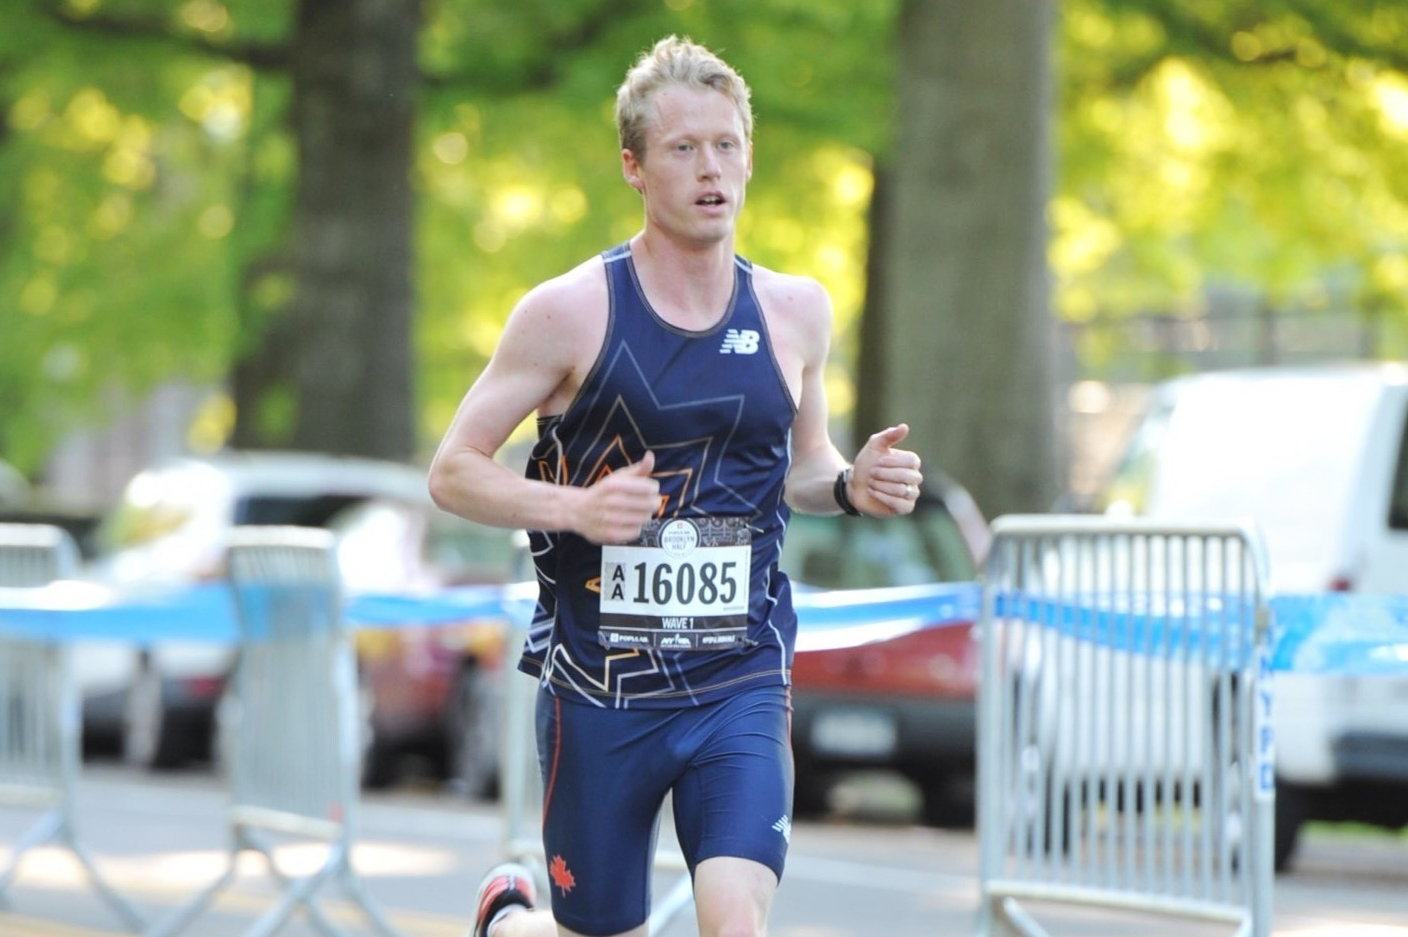 Matt Rand running the 2019 Popular Brooklyn Half